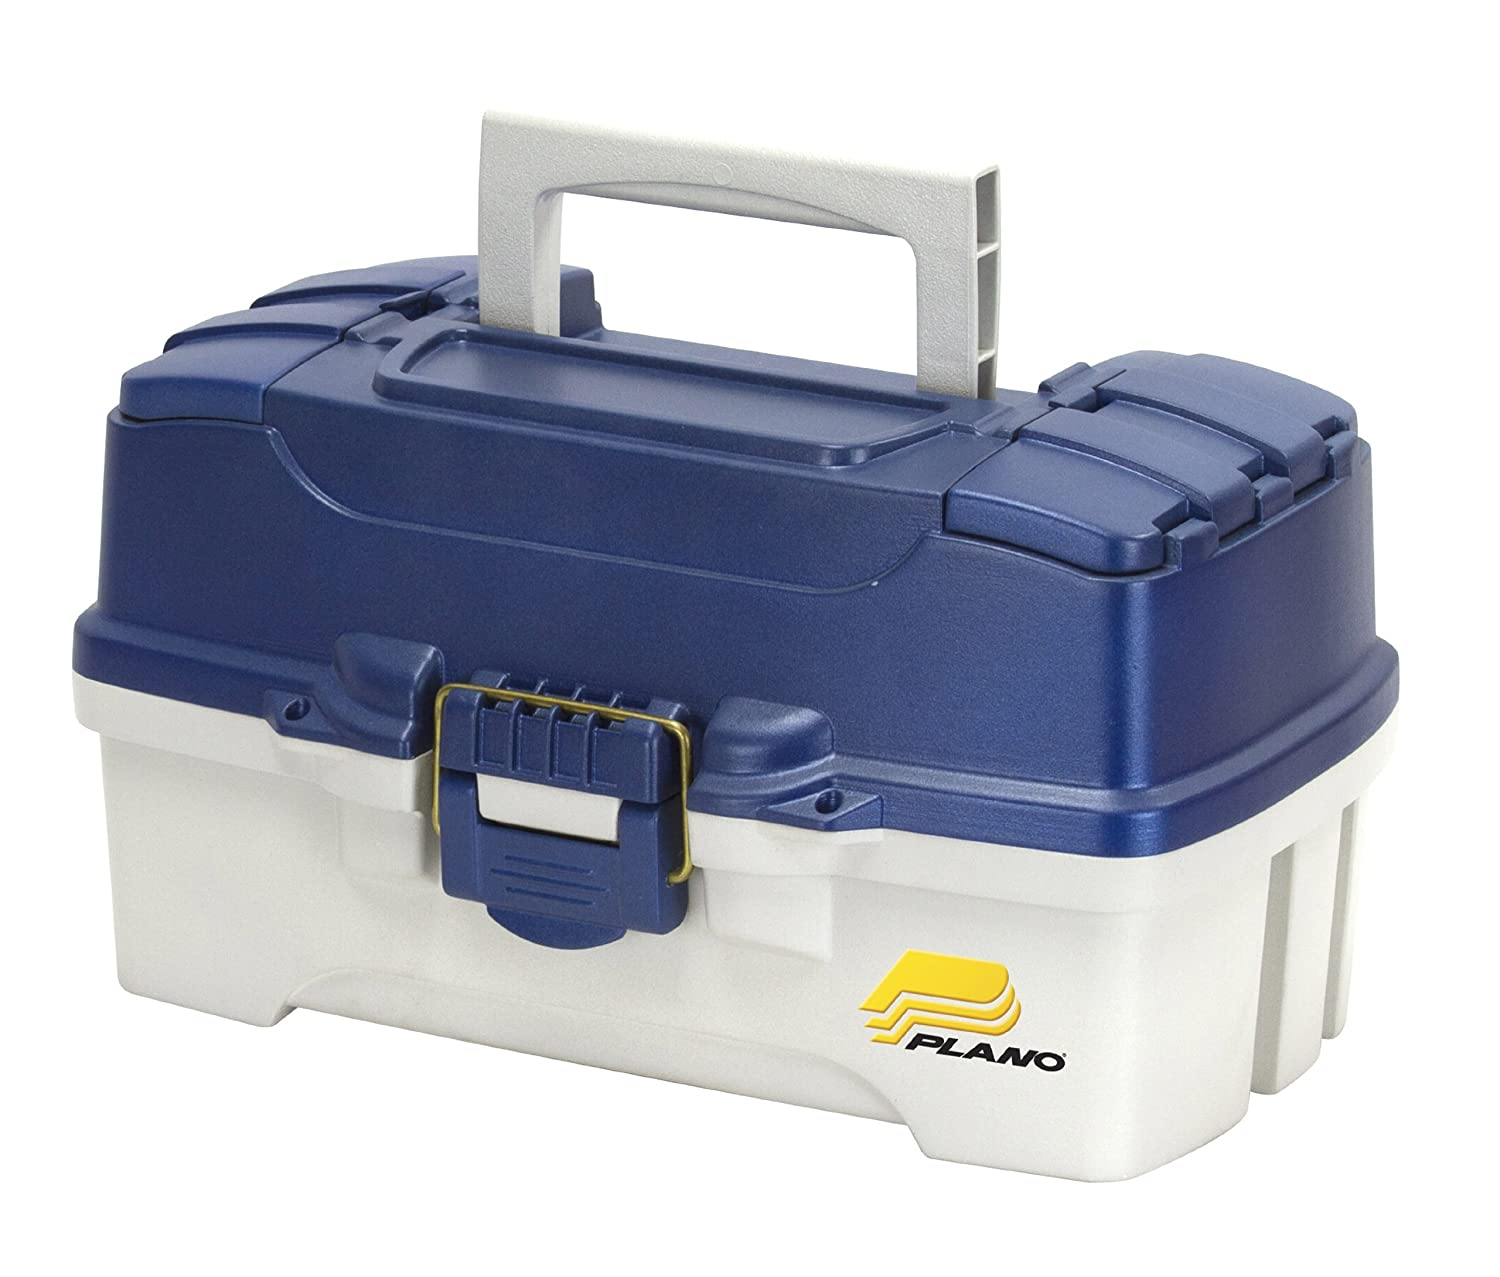 Plano 2-Tray Tackle Box Review